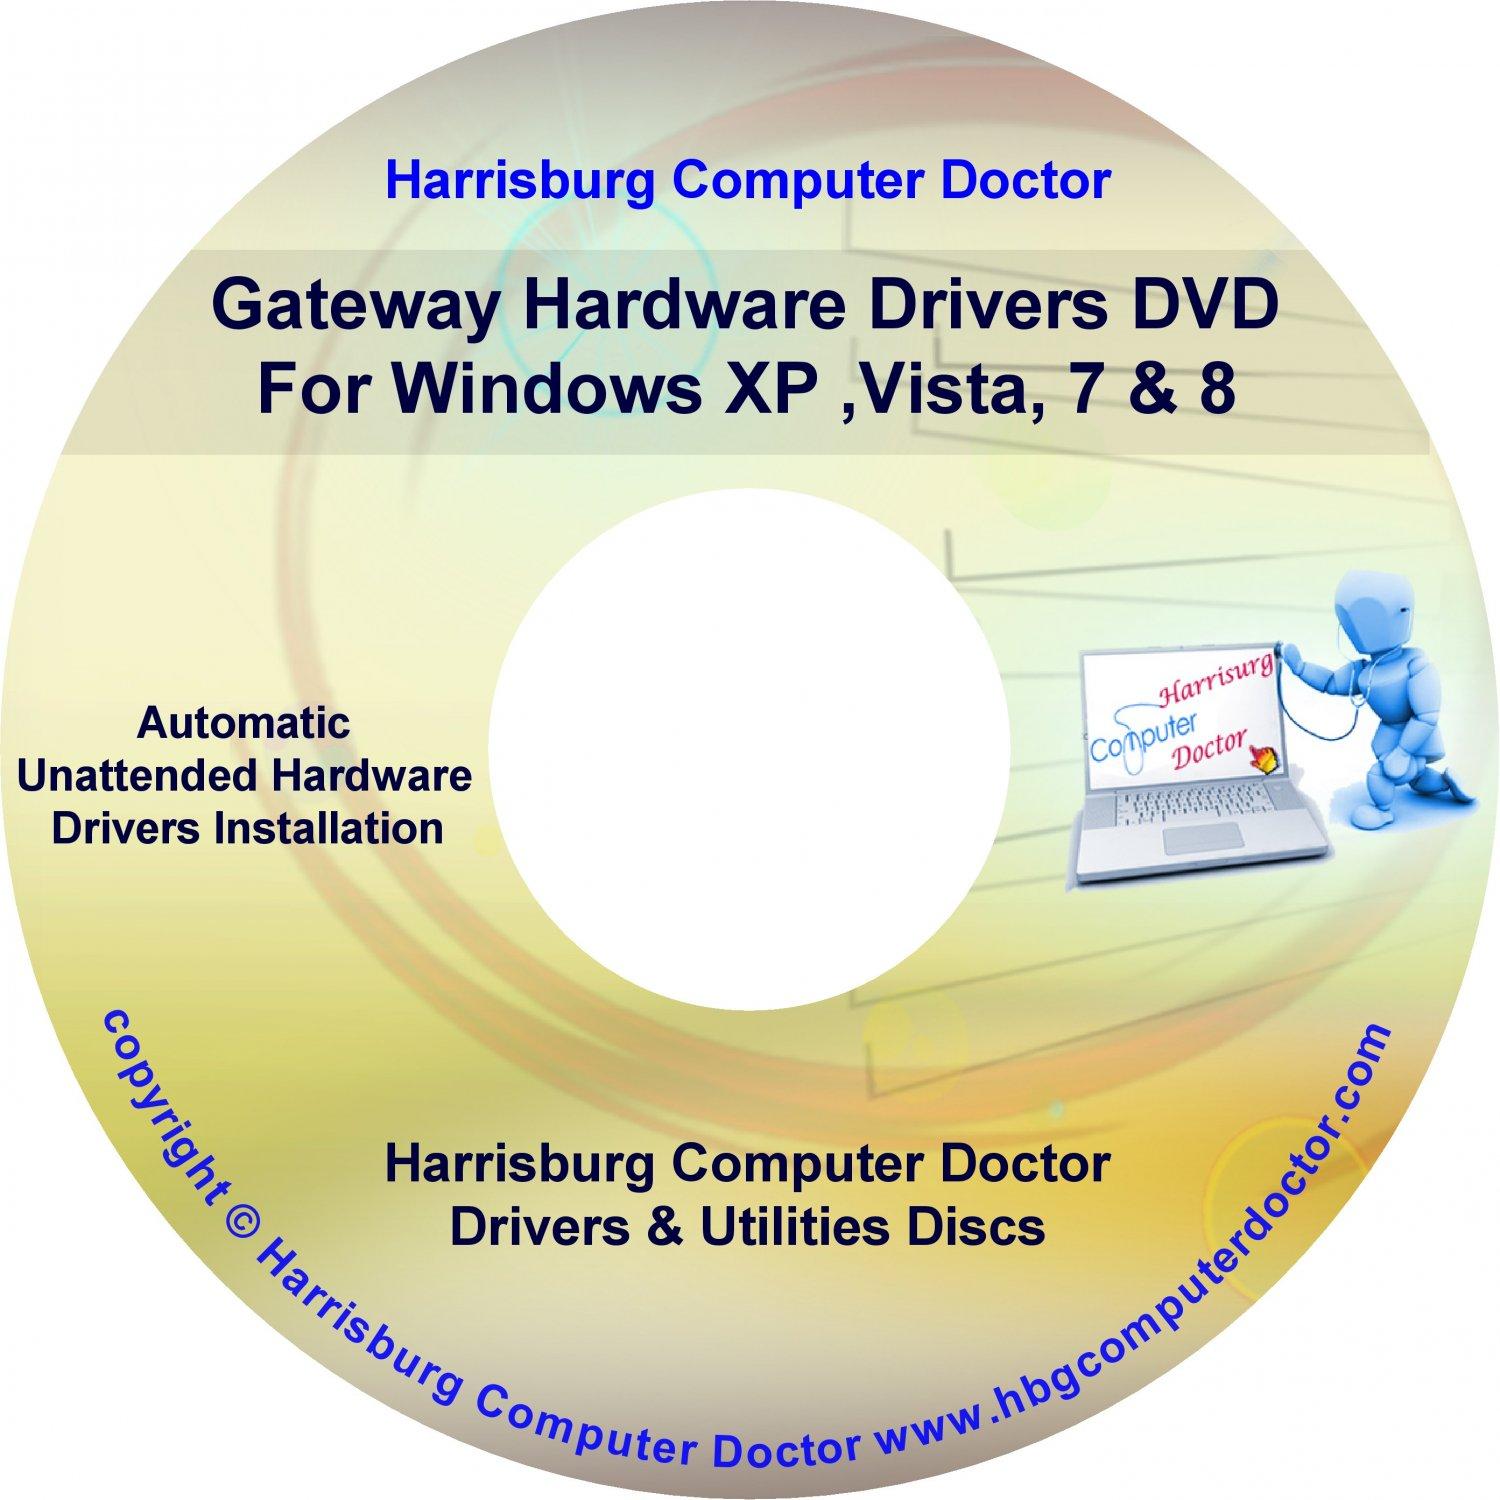 Gateway 7508GX Drivers DVD For Windows, XP, Vista, 7 & 8